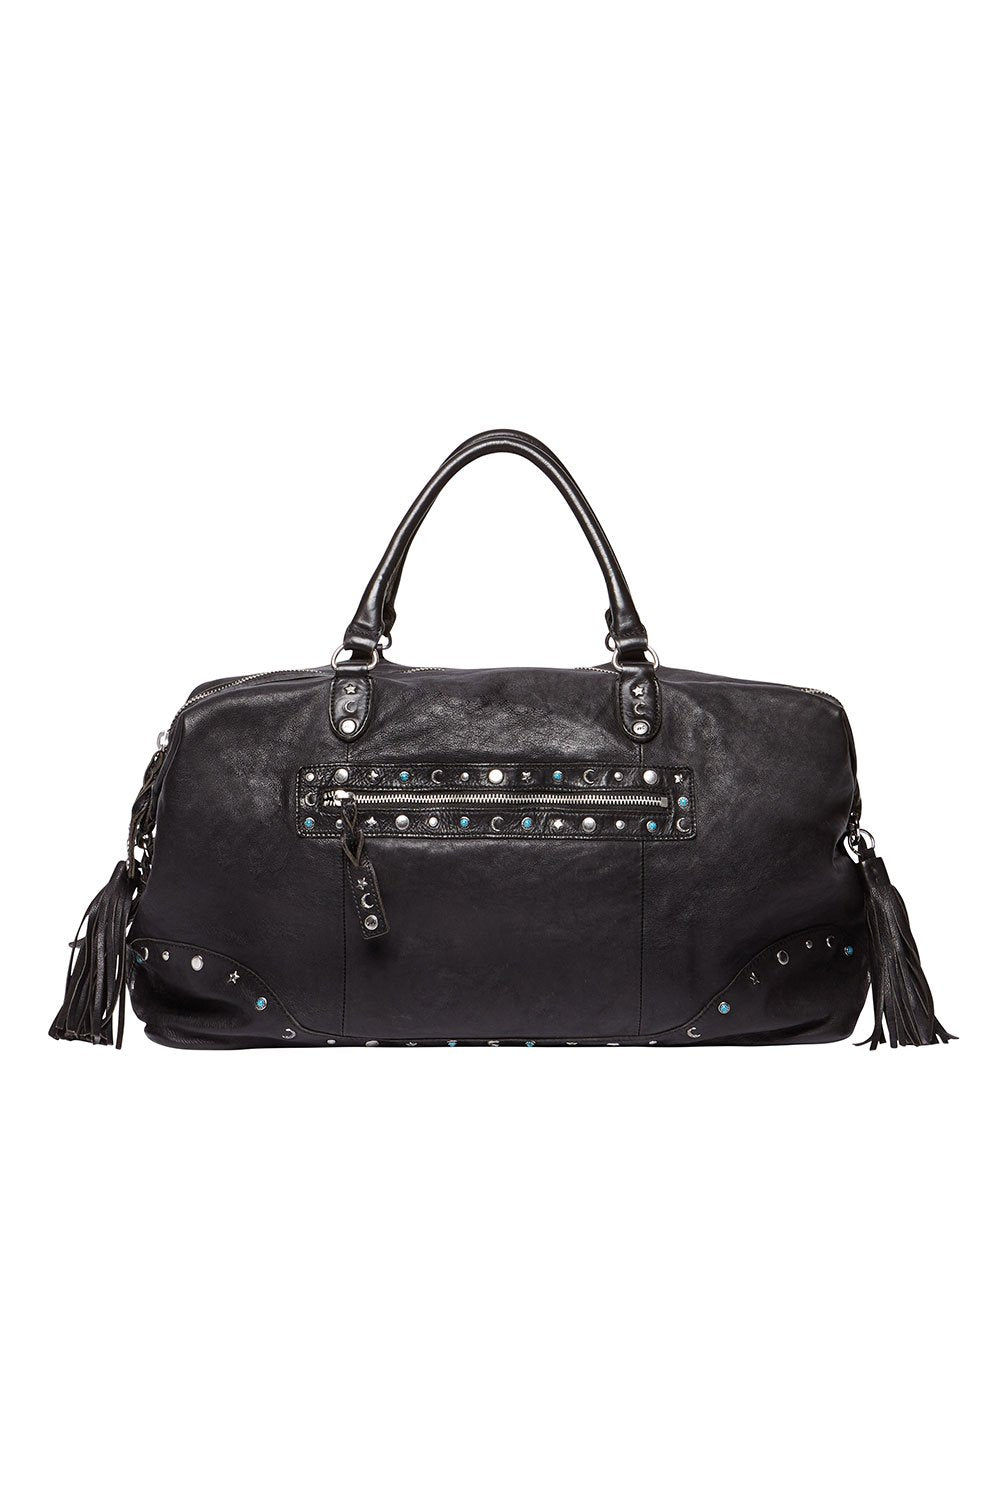 BOHEMIAN LEATHER TRAVEL BAG BLACK